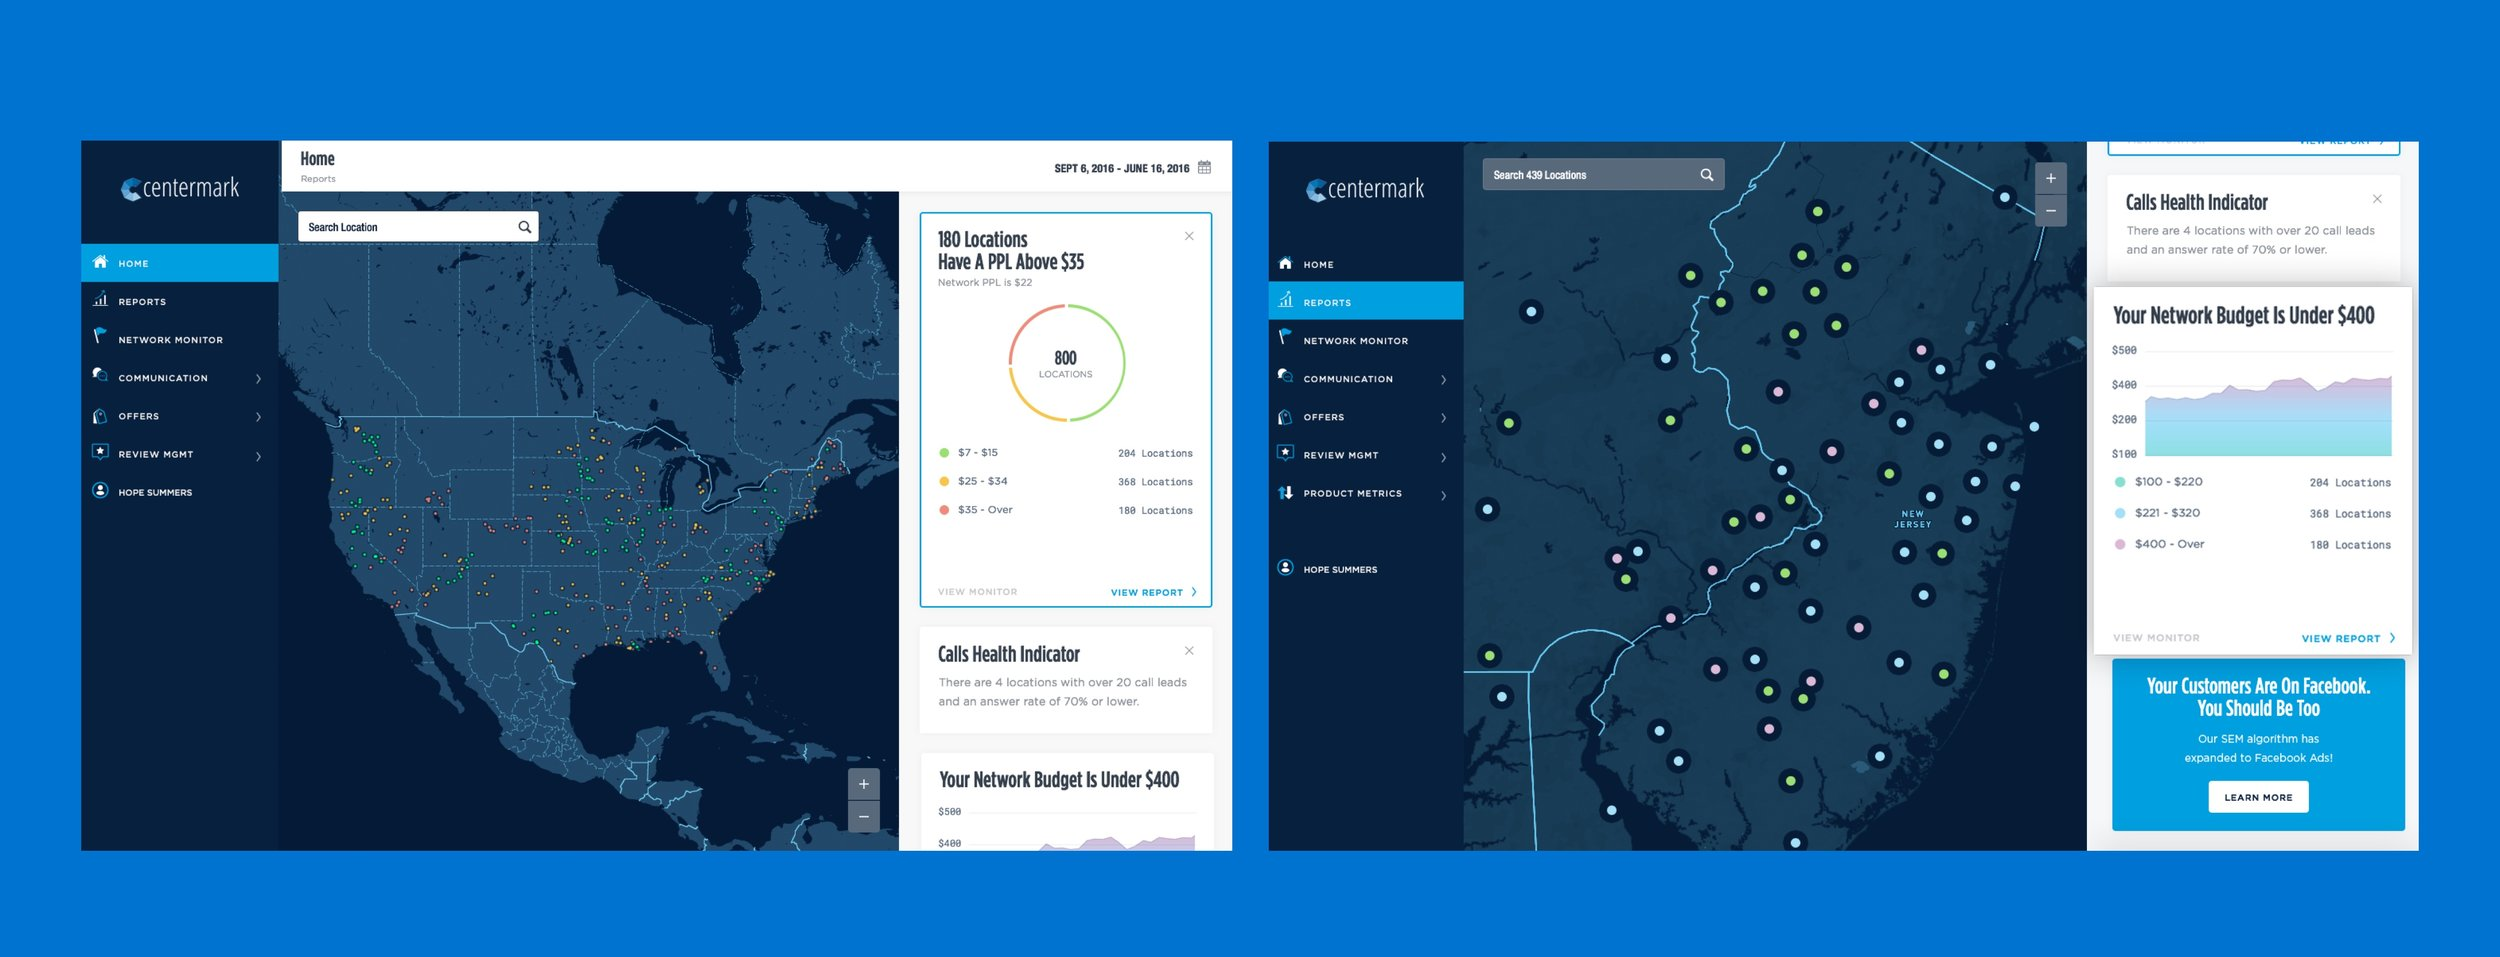 Designers learned that multi-location business owners wanted to created deep visibility into their marketing campaigns. A comprehensive map tool was created which allowed for monitoring trends across entire networks.